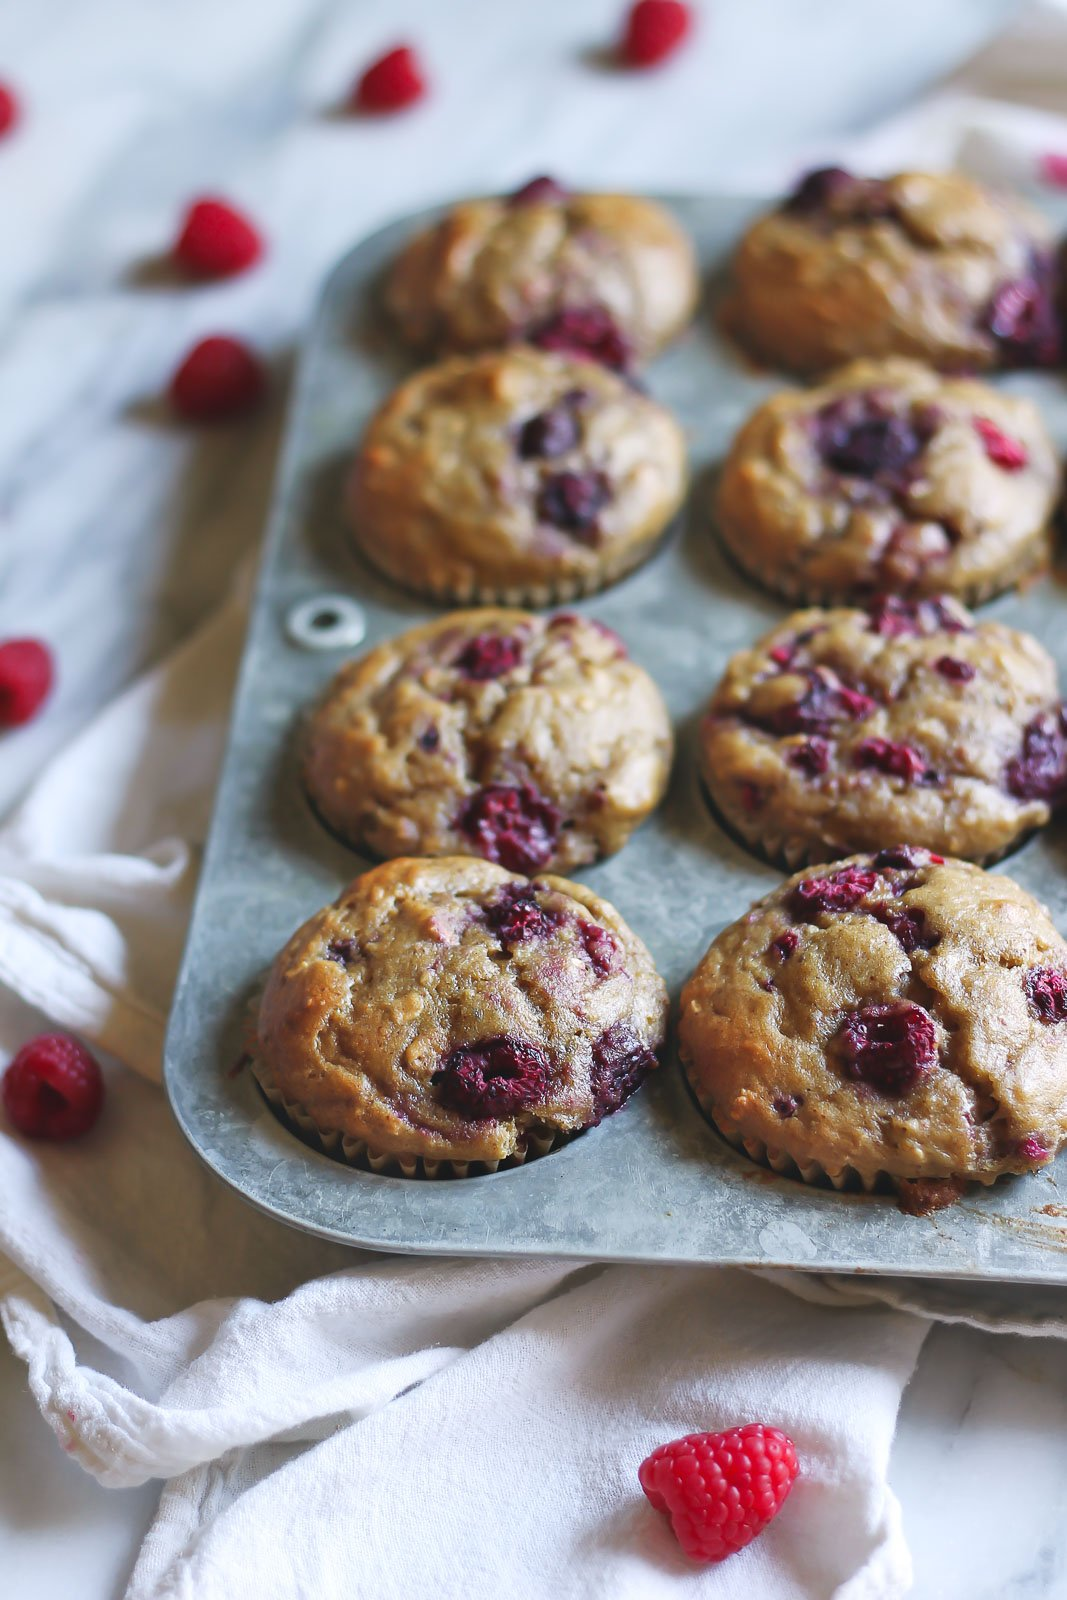 Healthy banana oatmeal muffins bursting with fresh, juicy raspberries! These amazing muffins are made with whole grains, greek yogurt & almond butter -- ingredients you can feel good about!